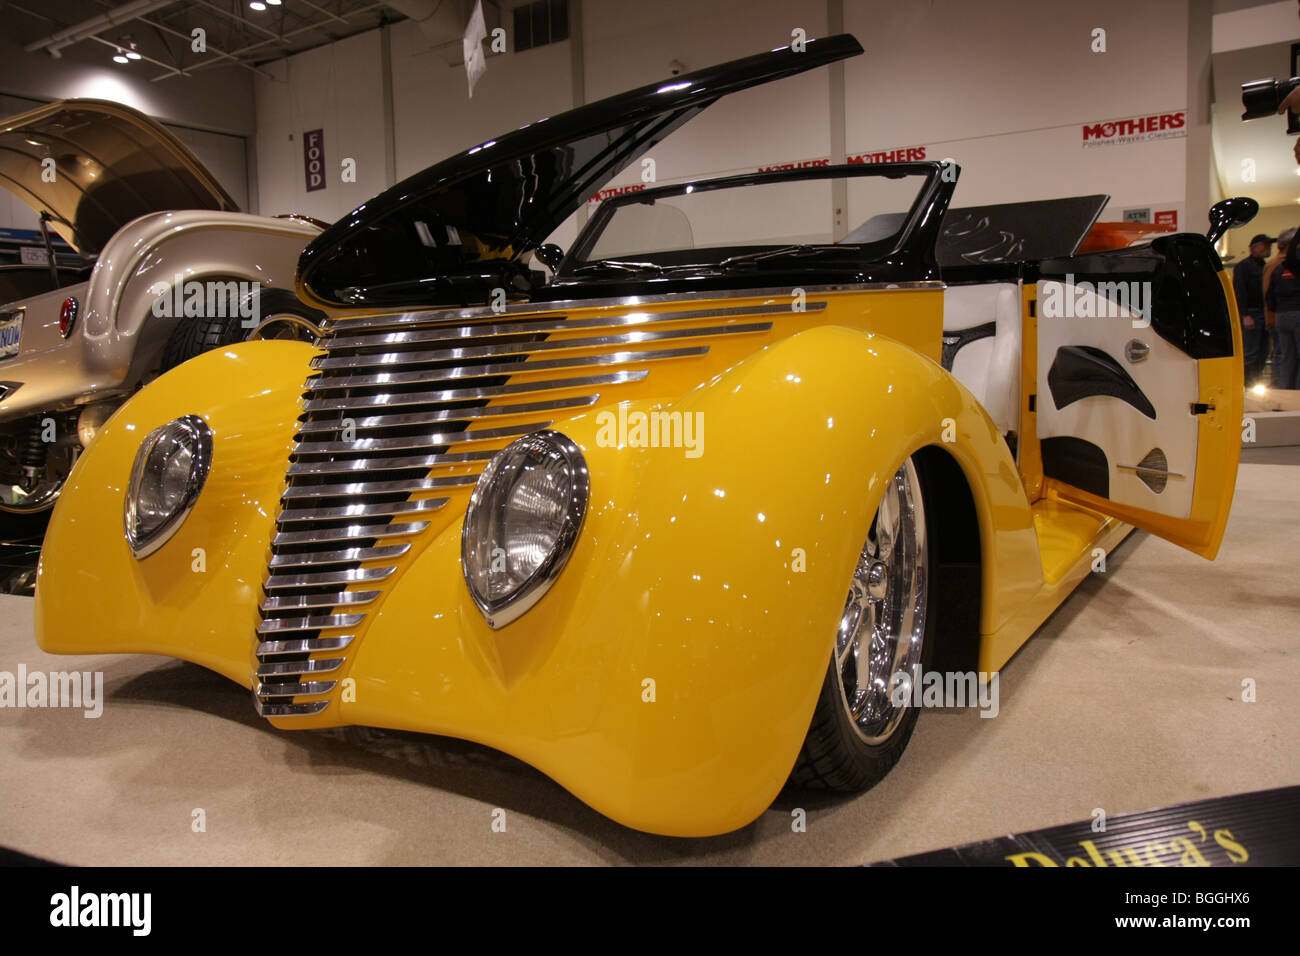 Yellow custom vintage classic American retro cars on display at a ...